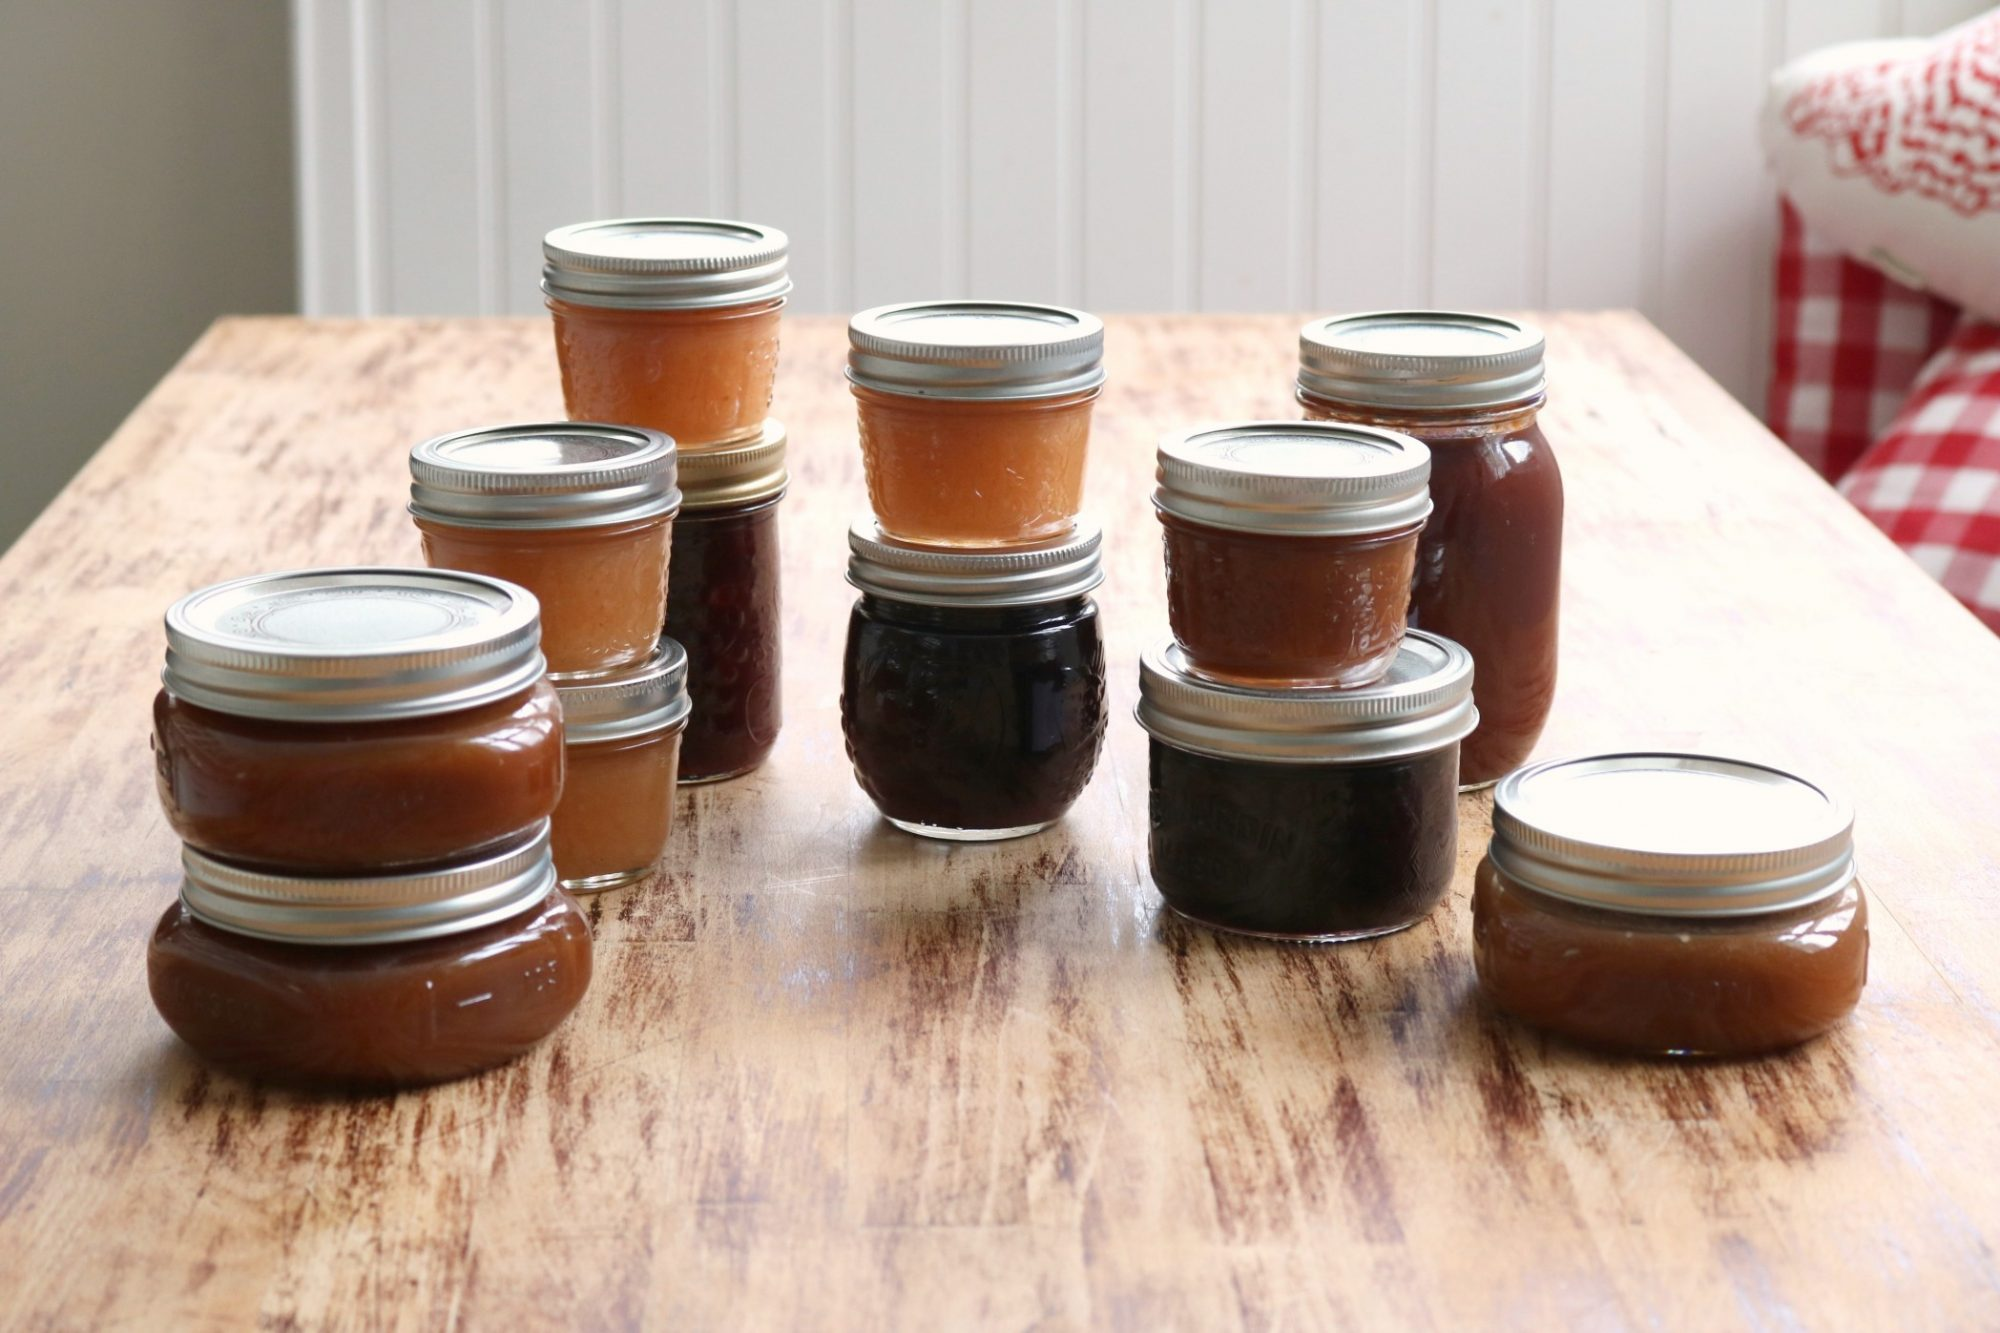 Preserves on table